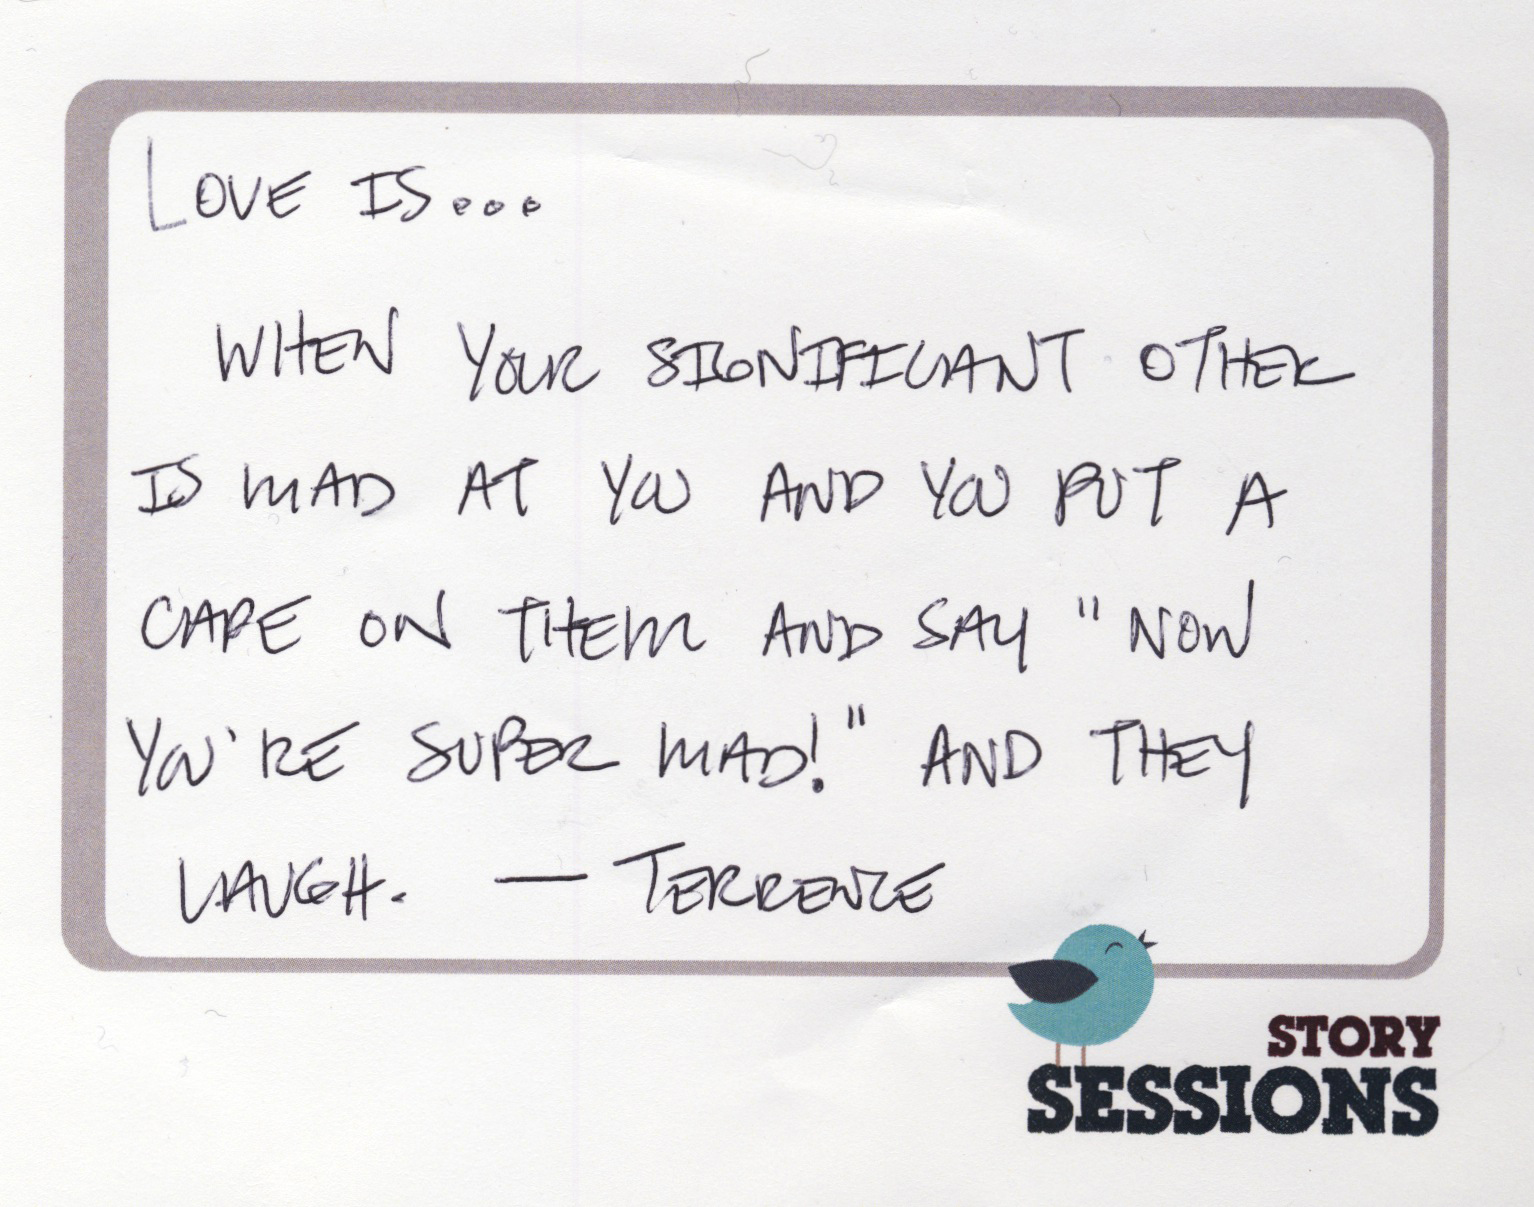 Love letters from the audience | Story Sessions